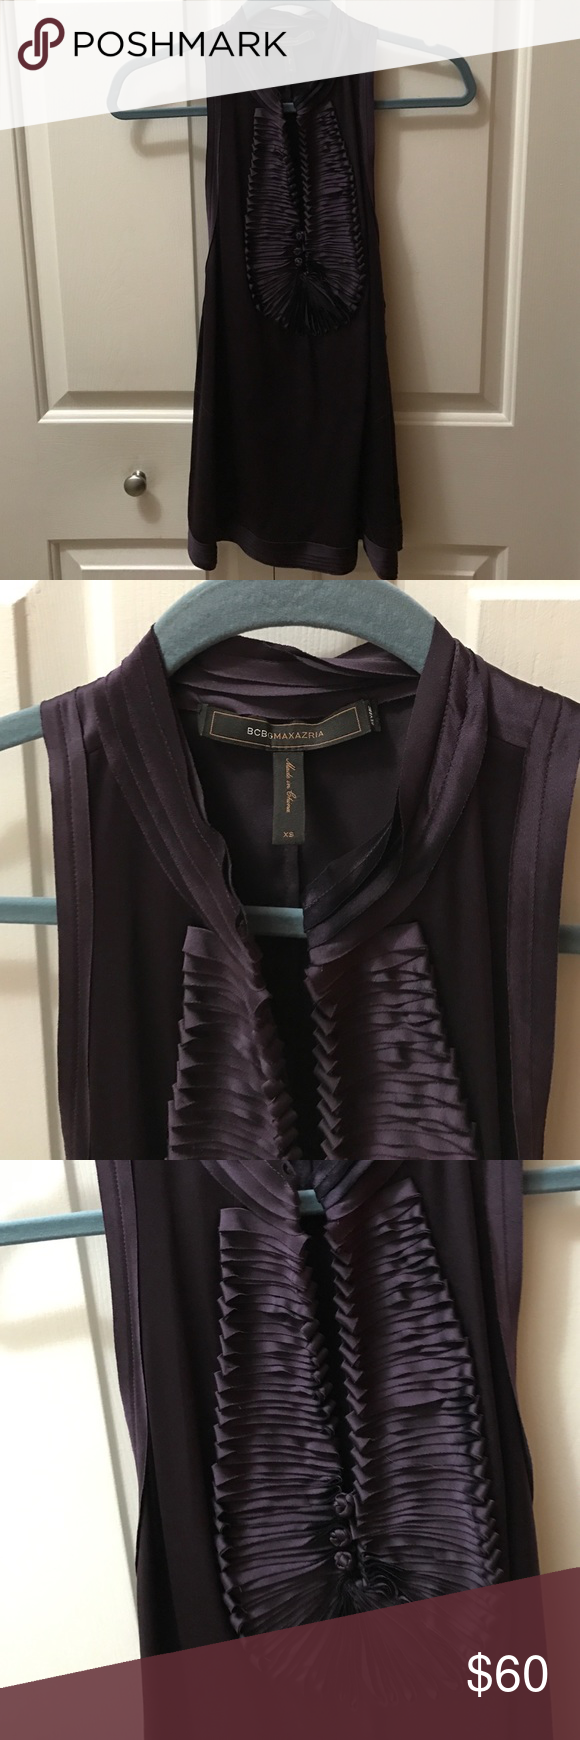 BCBG Eggplant Tank Top Worn once for headshots. Great shirt for pictures or going out. Silk like material. Super comfortable and flattering. BCBGMaxAzria Tops